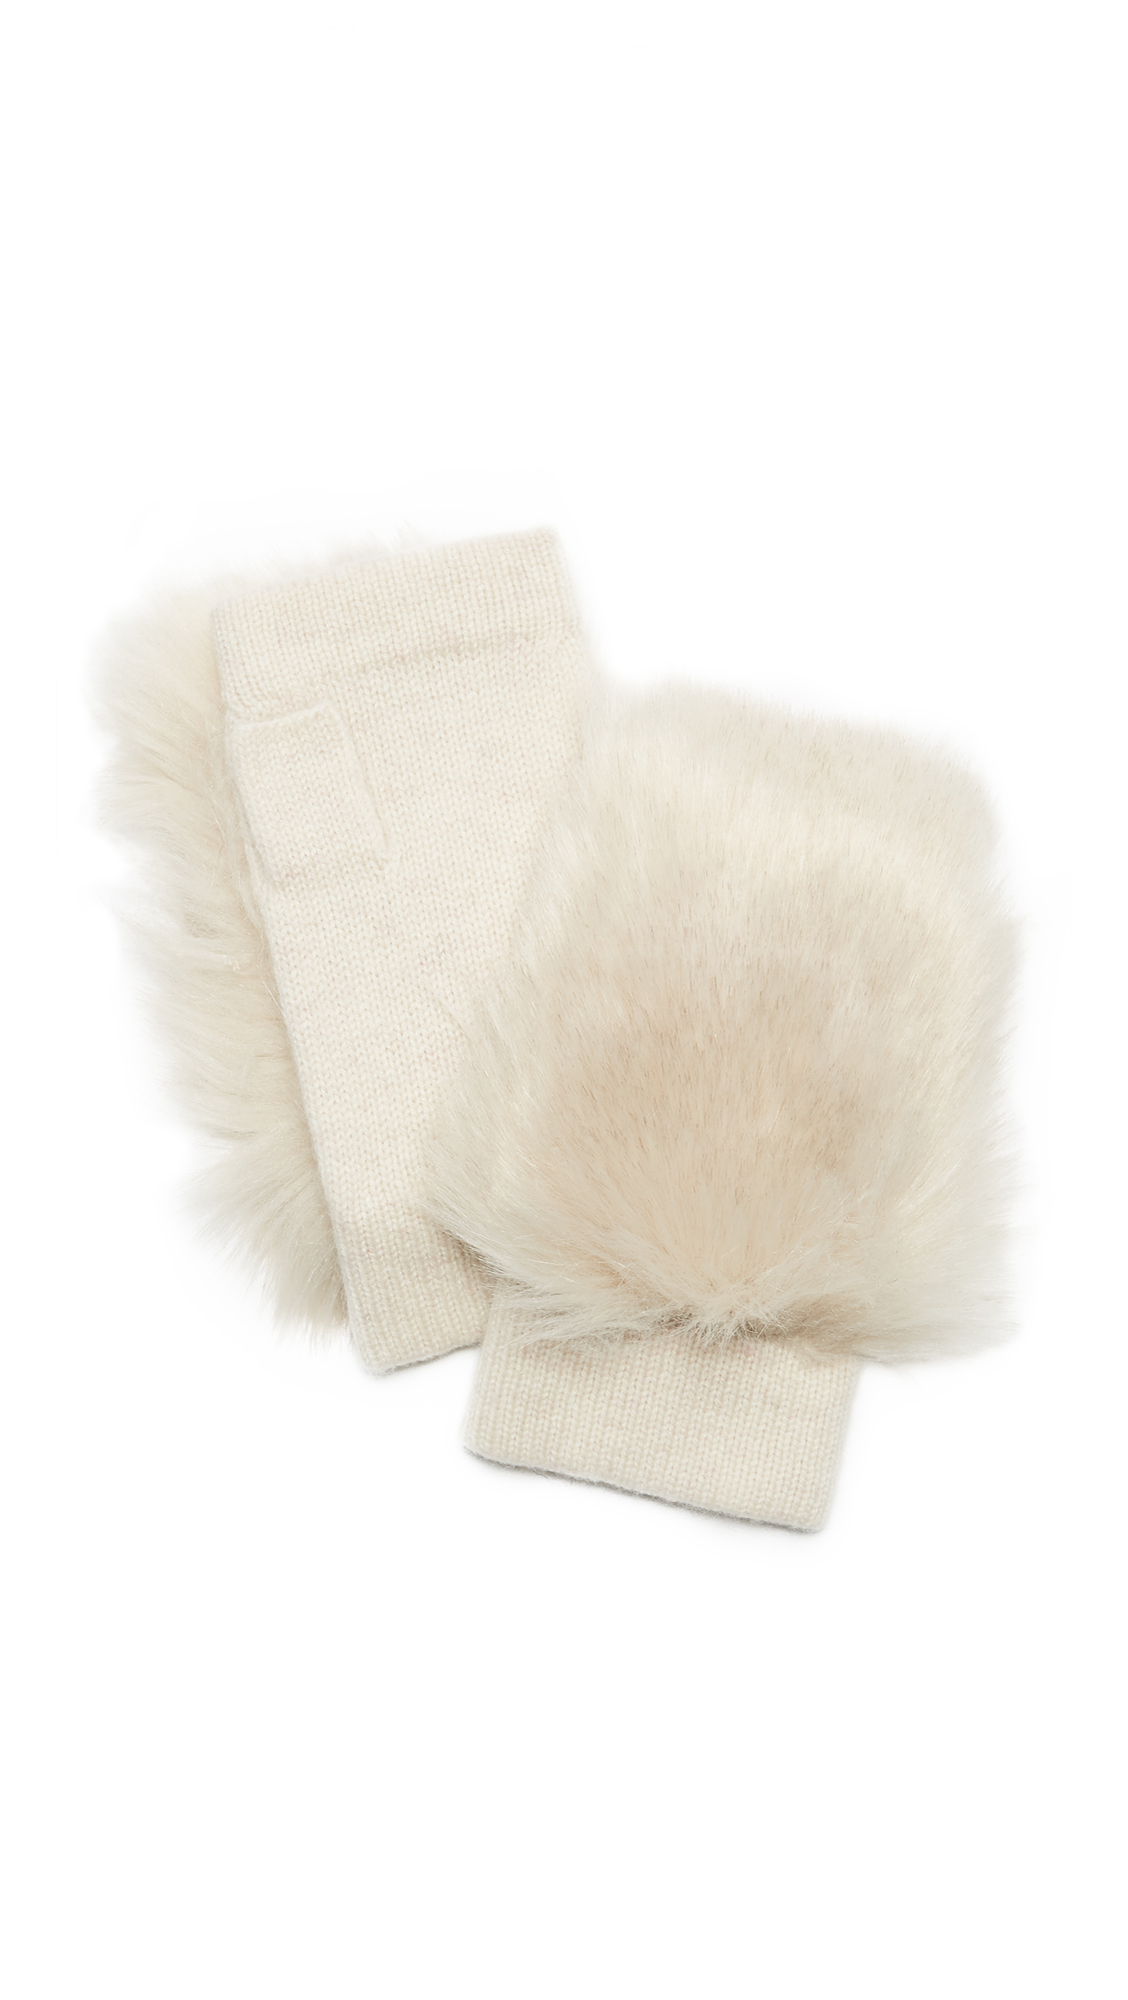 Carolina Amato Faux Fur Knit Fingerless Gloves - Oatmeal